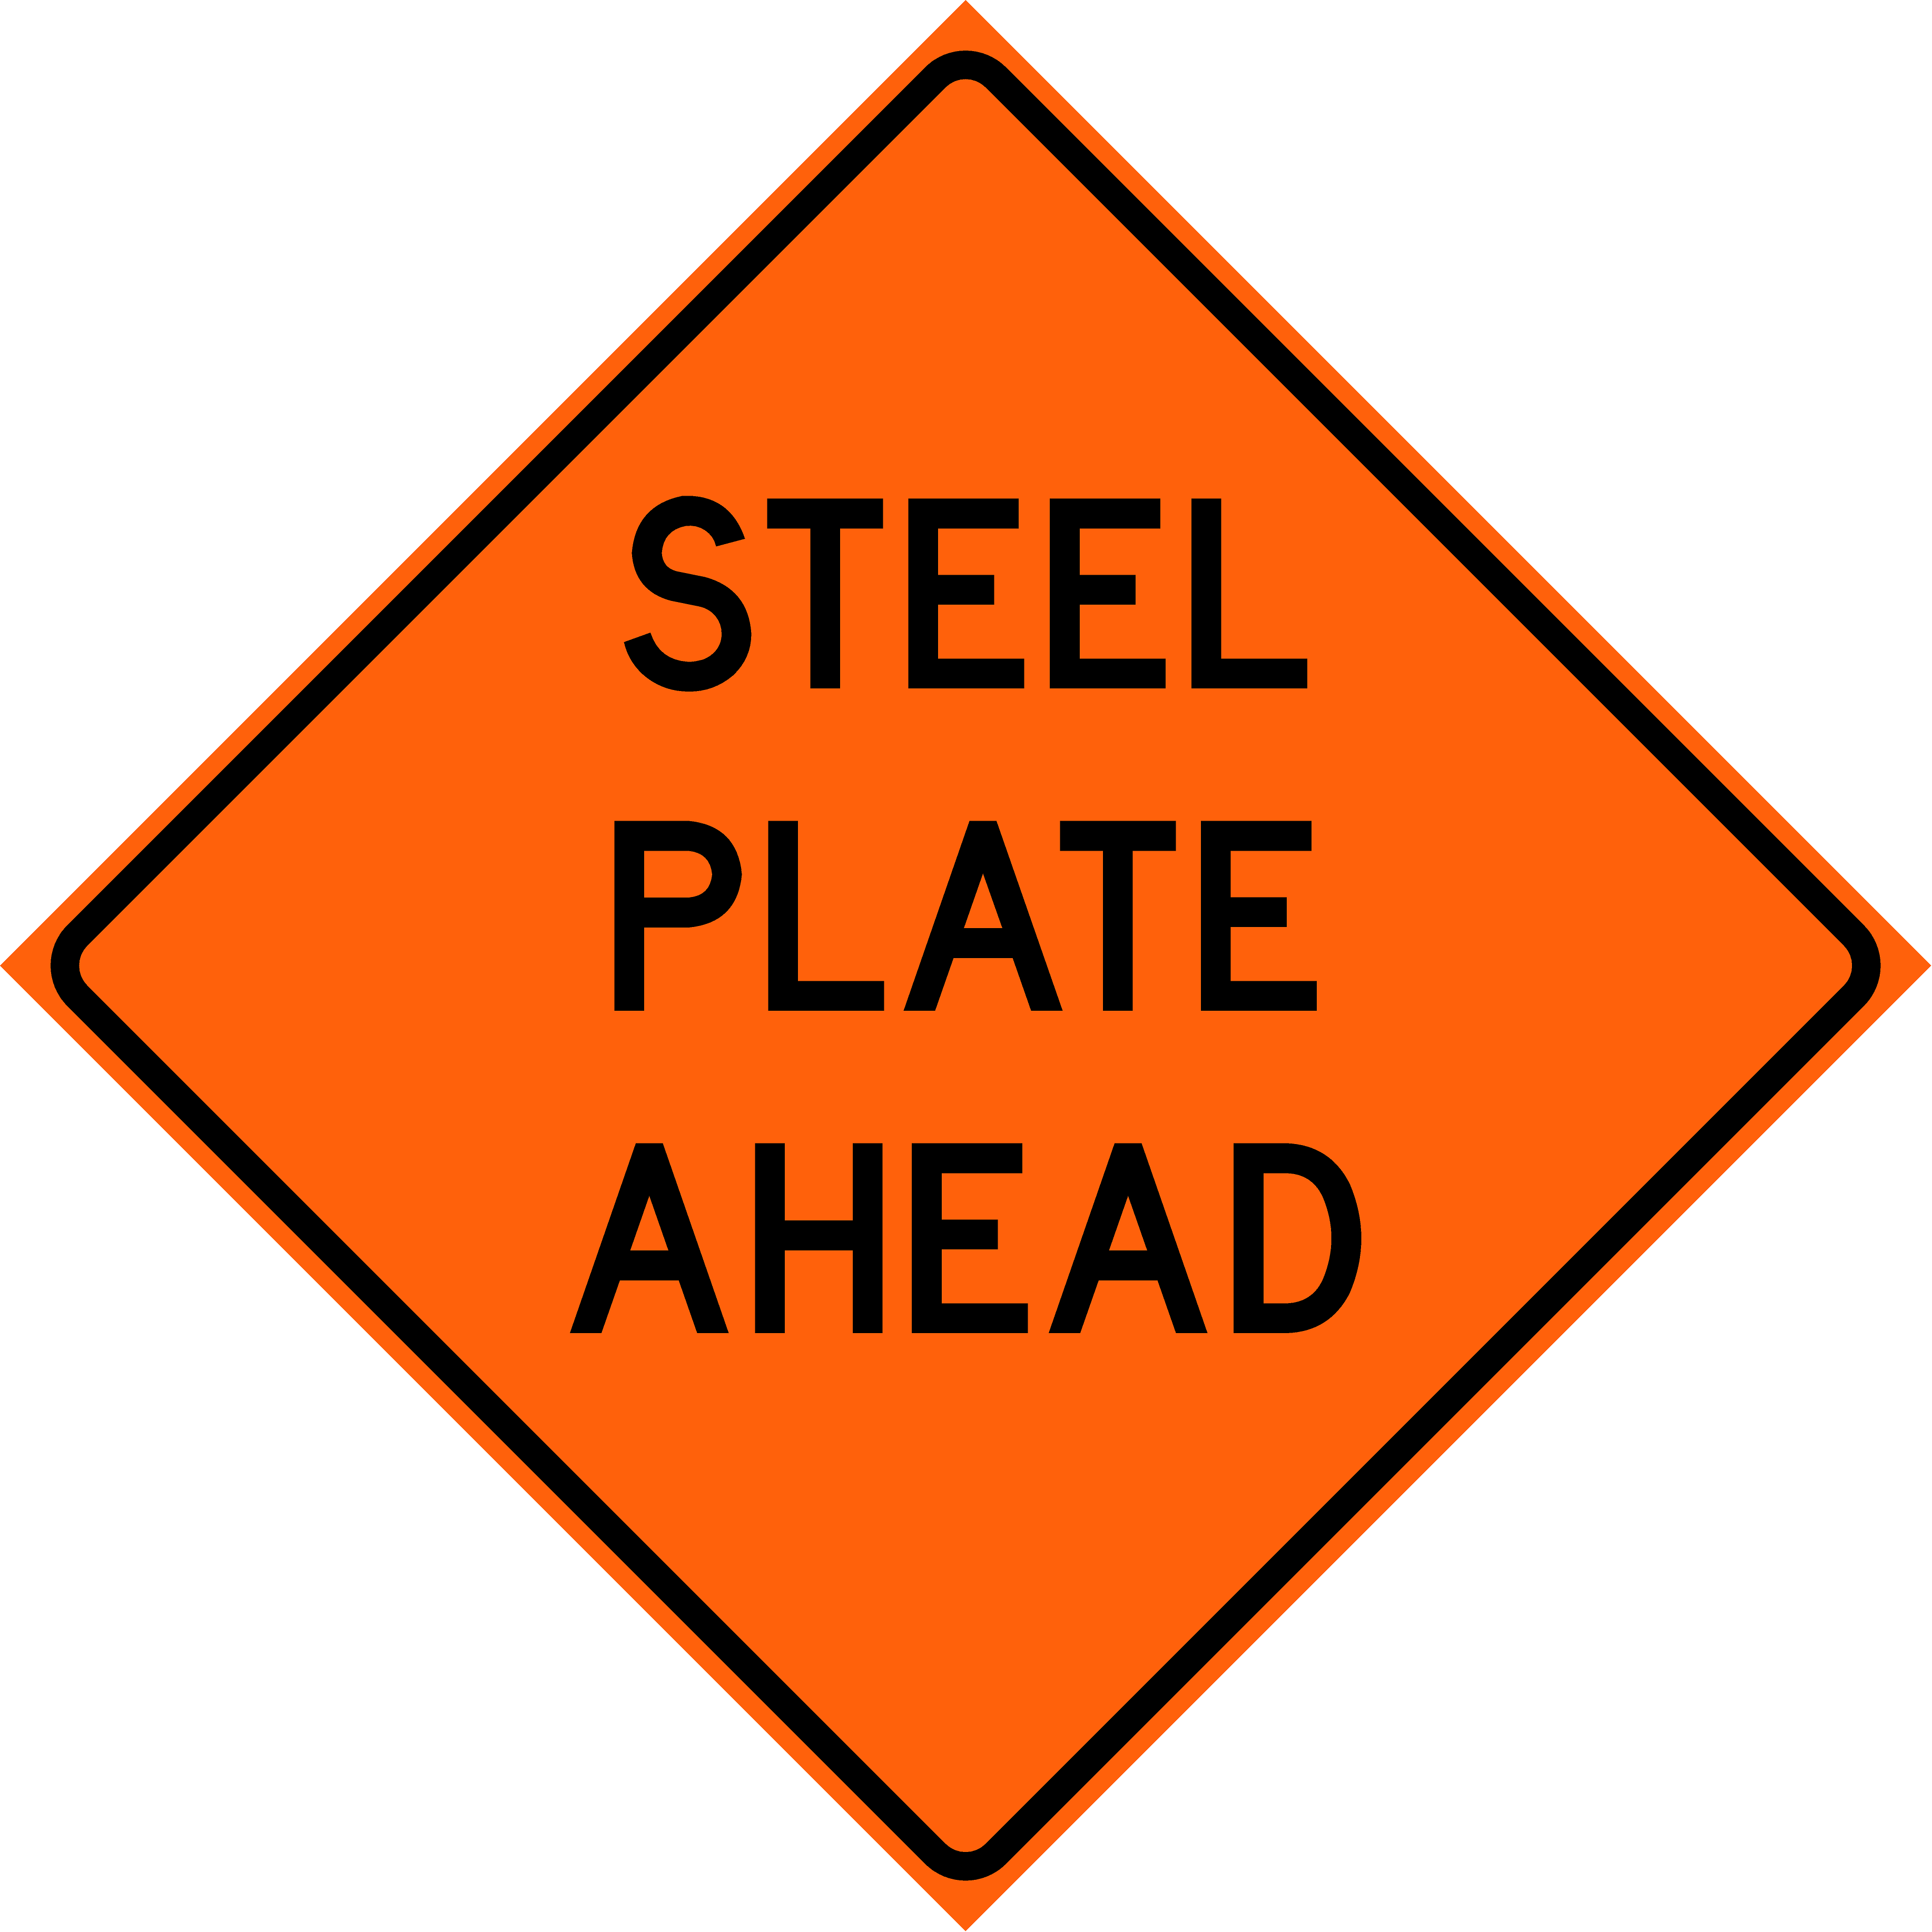 Steel Plate Ahead (W8-24)